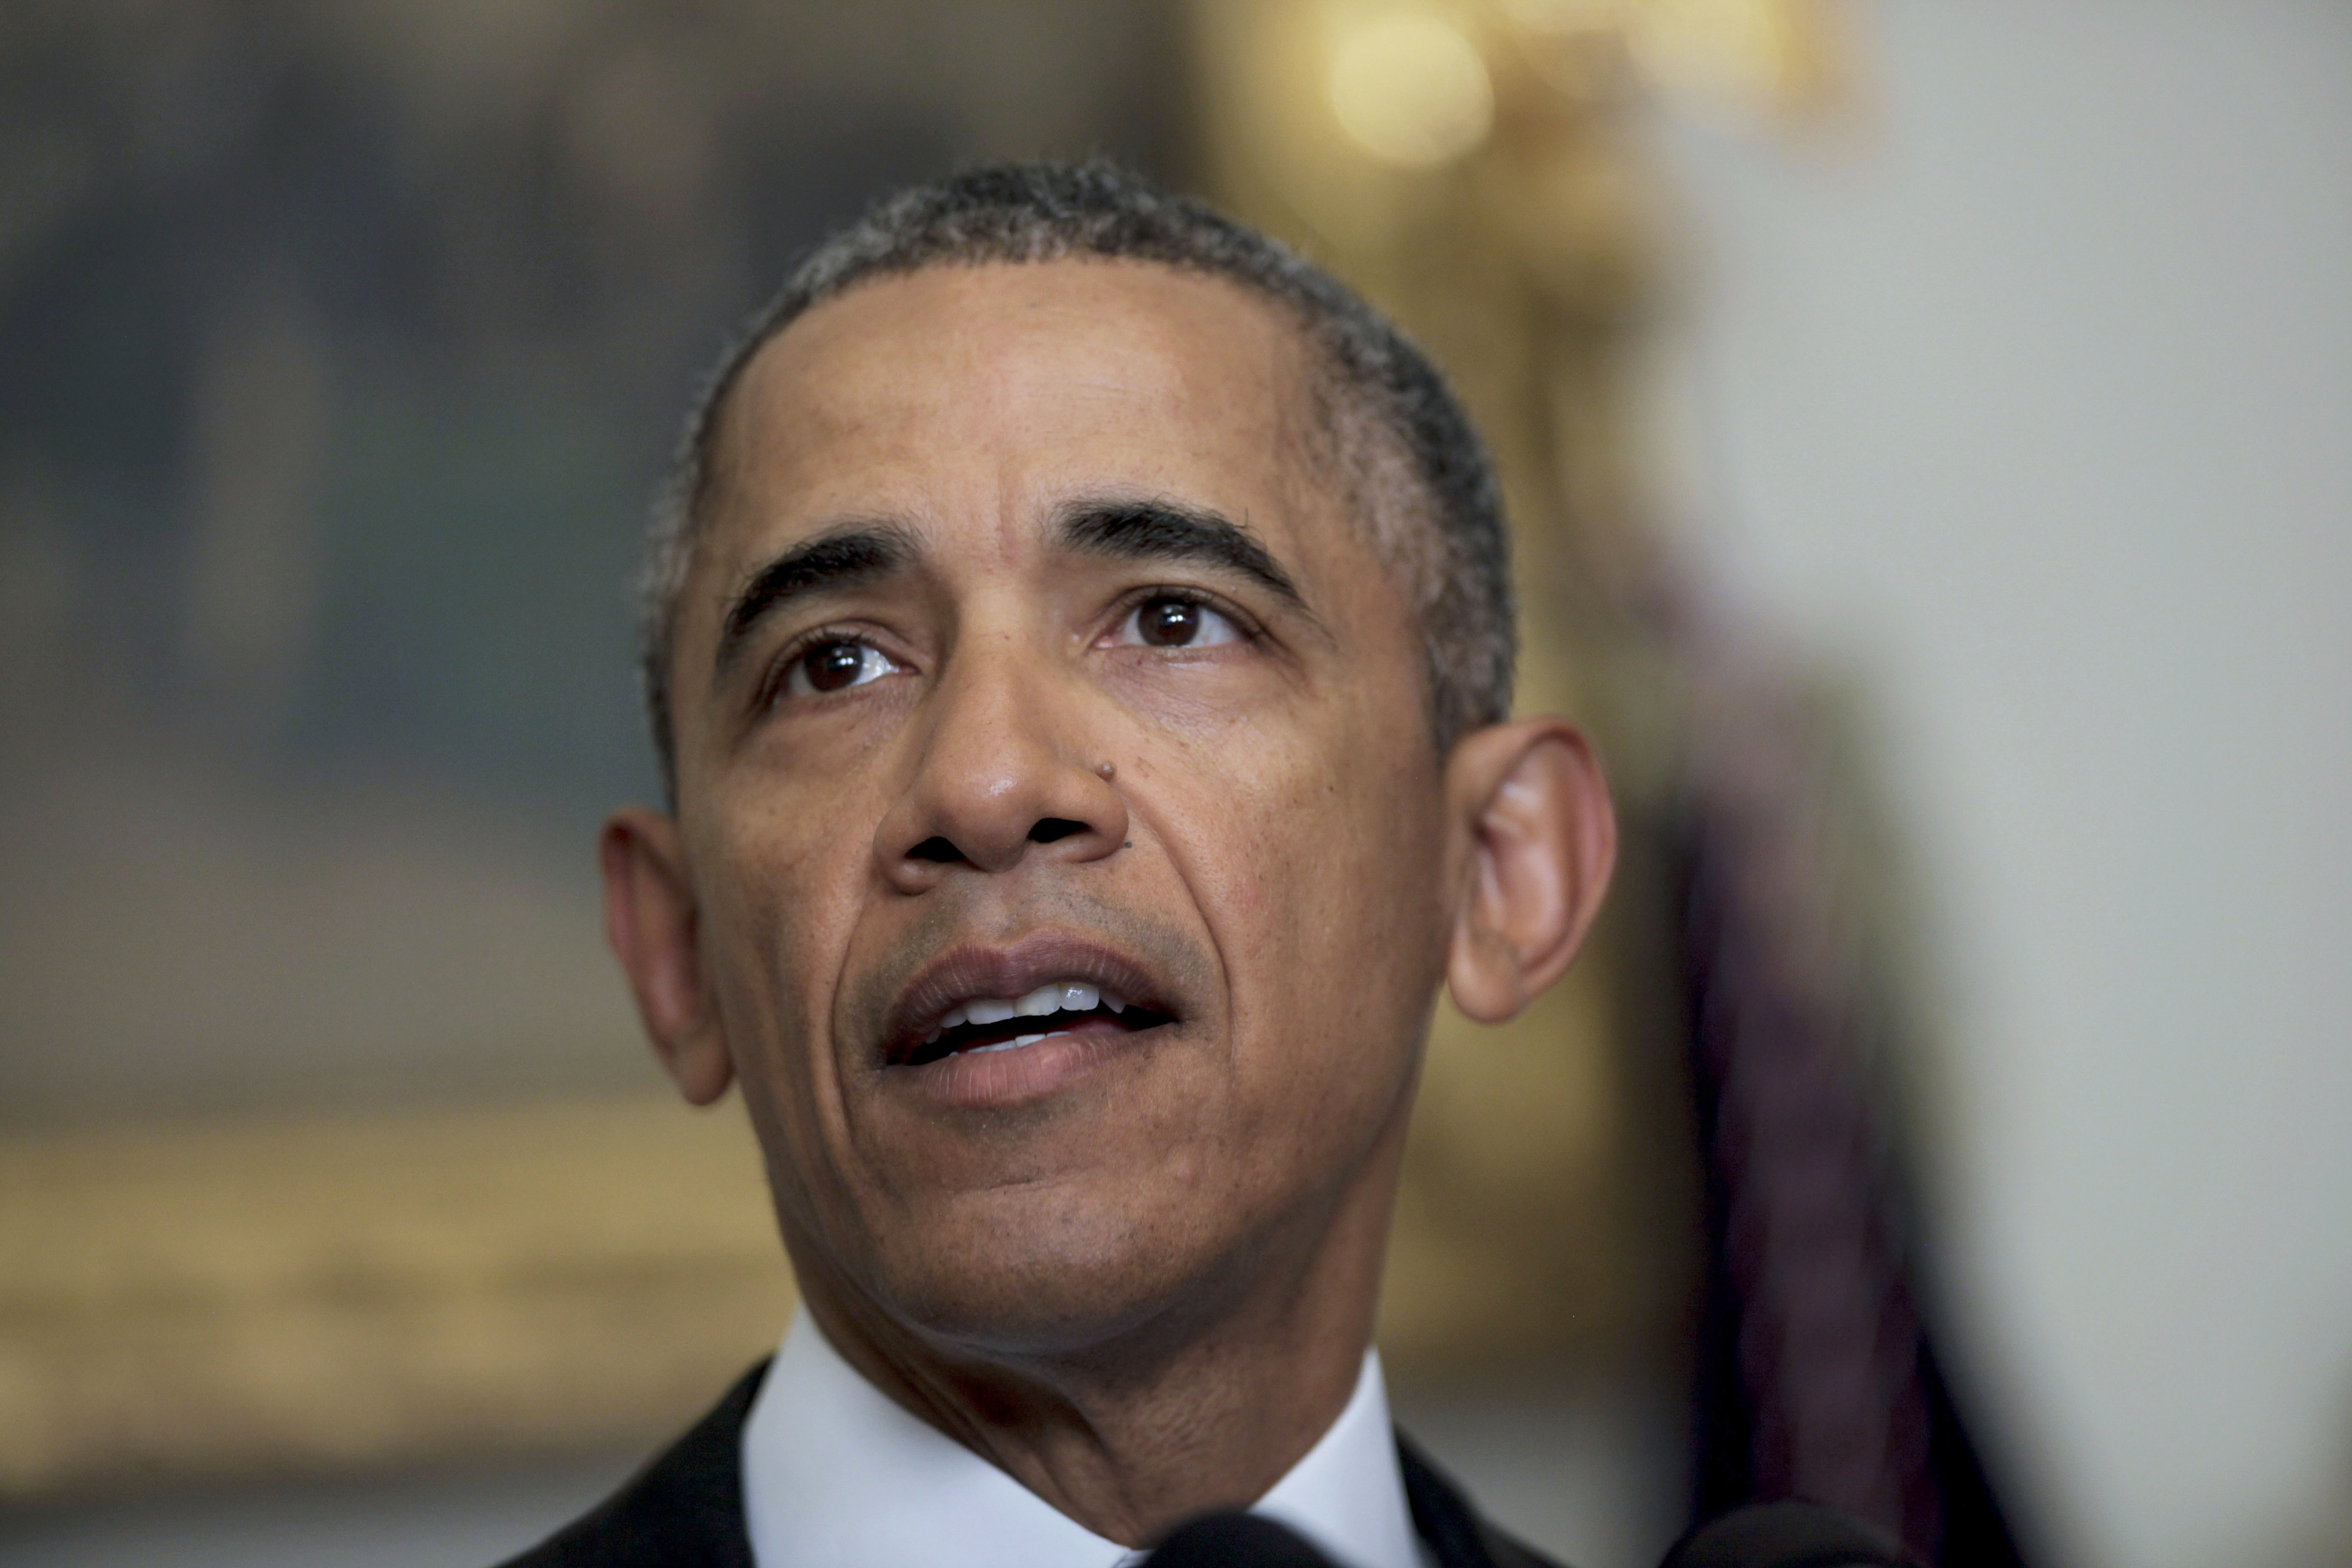 Obama Makes Statement On Iran